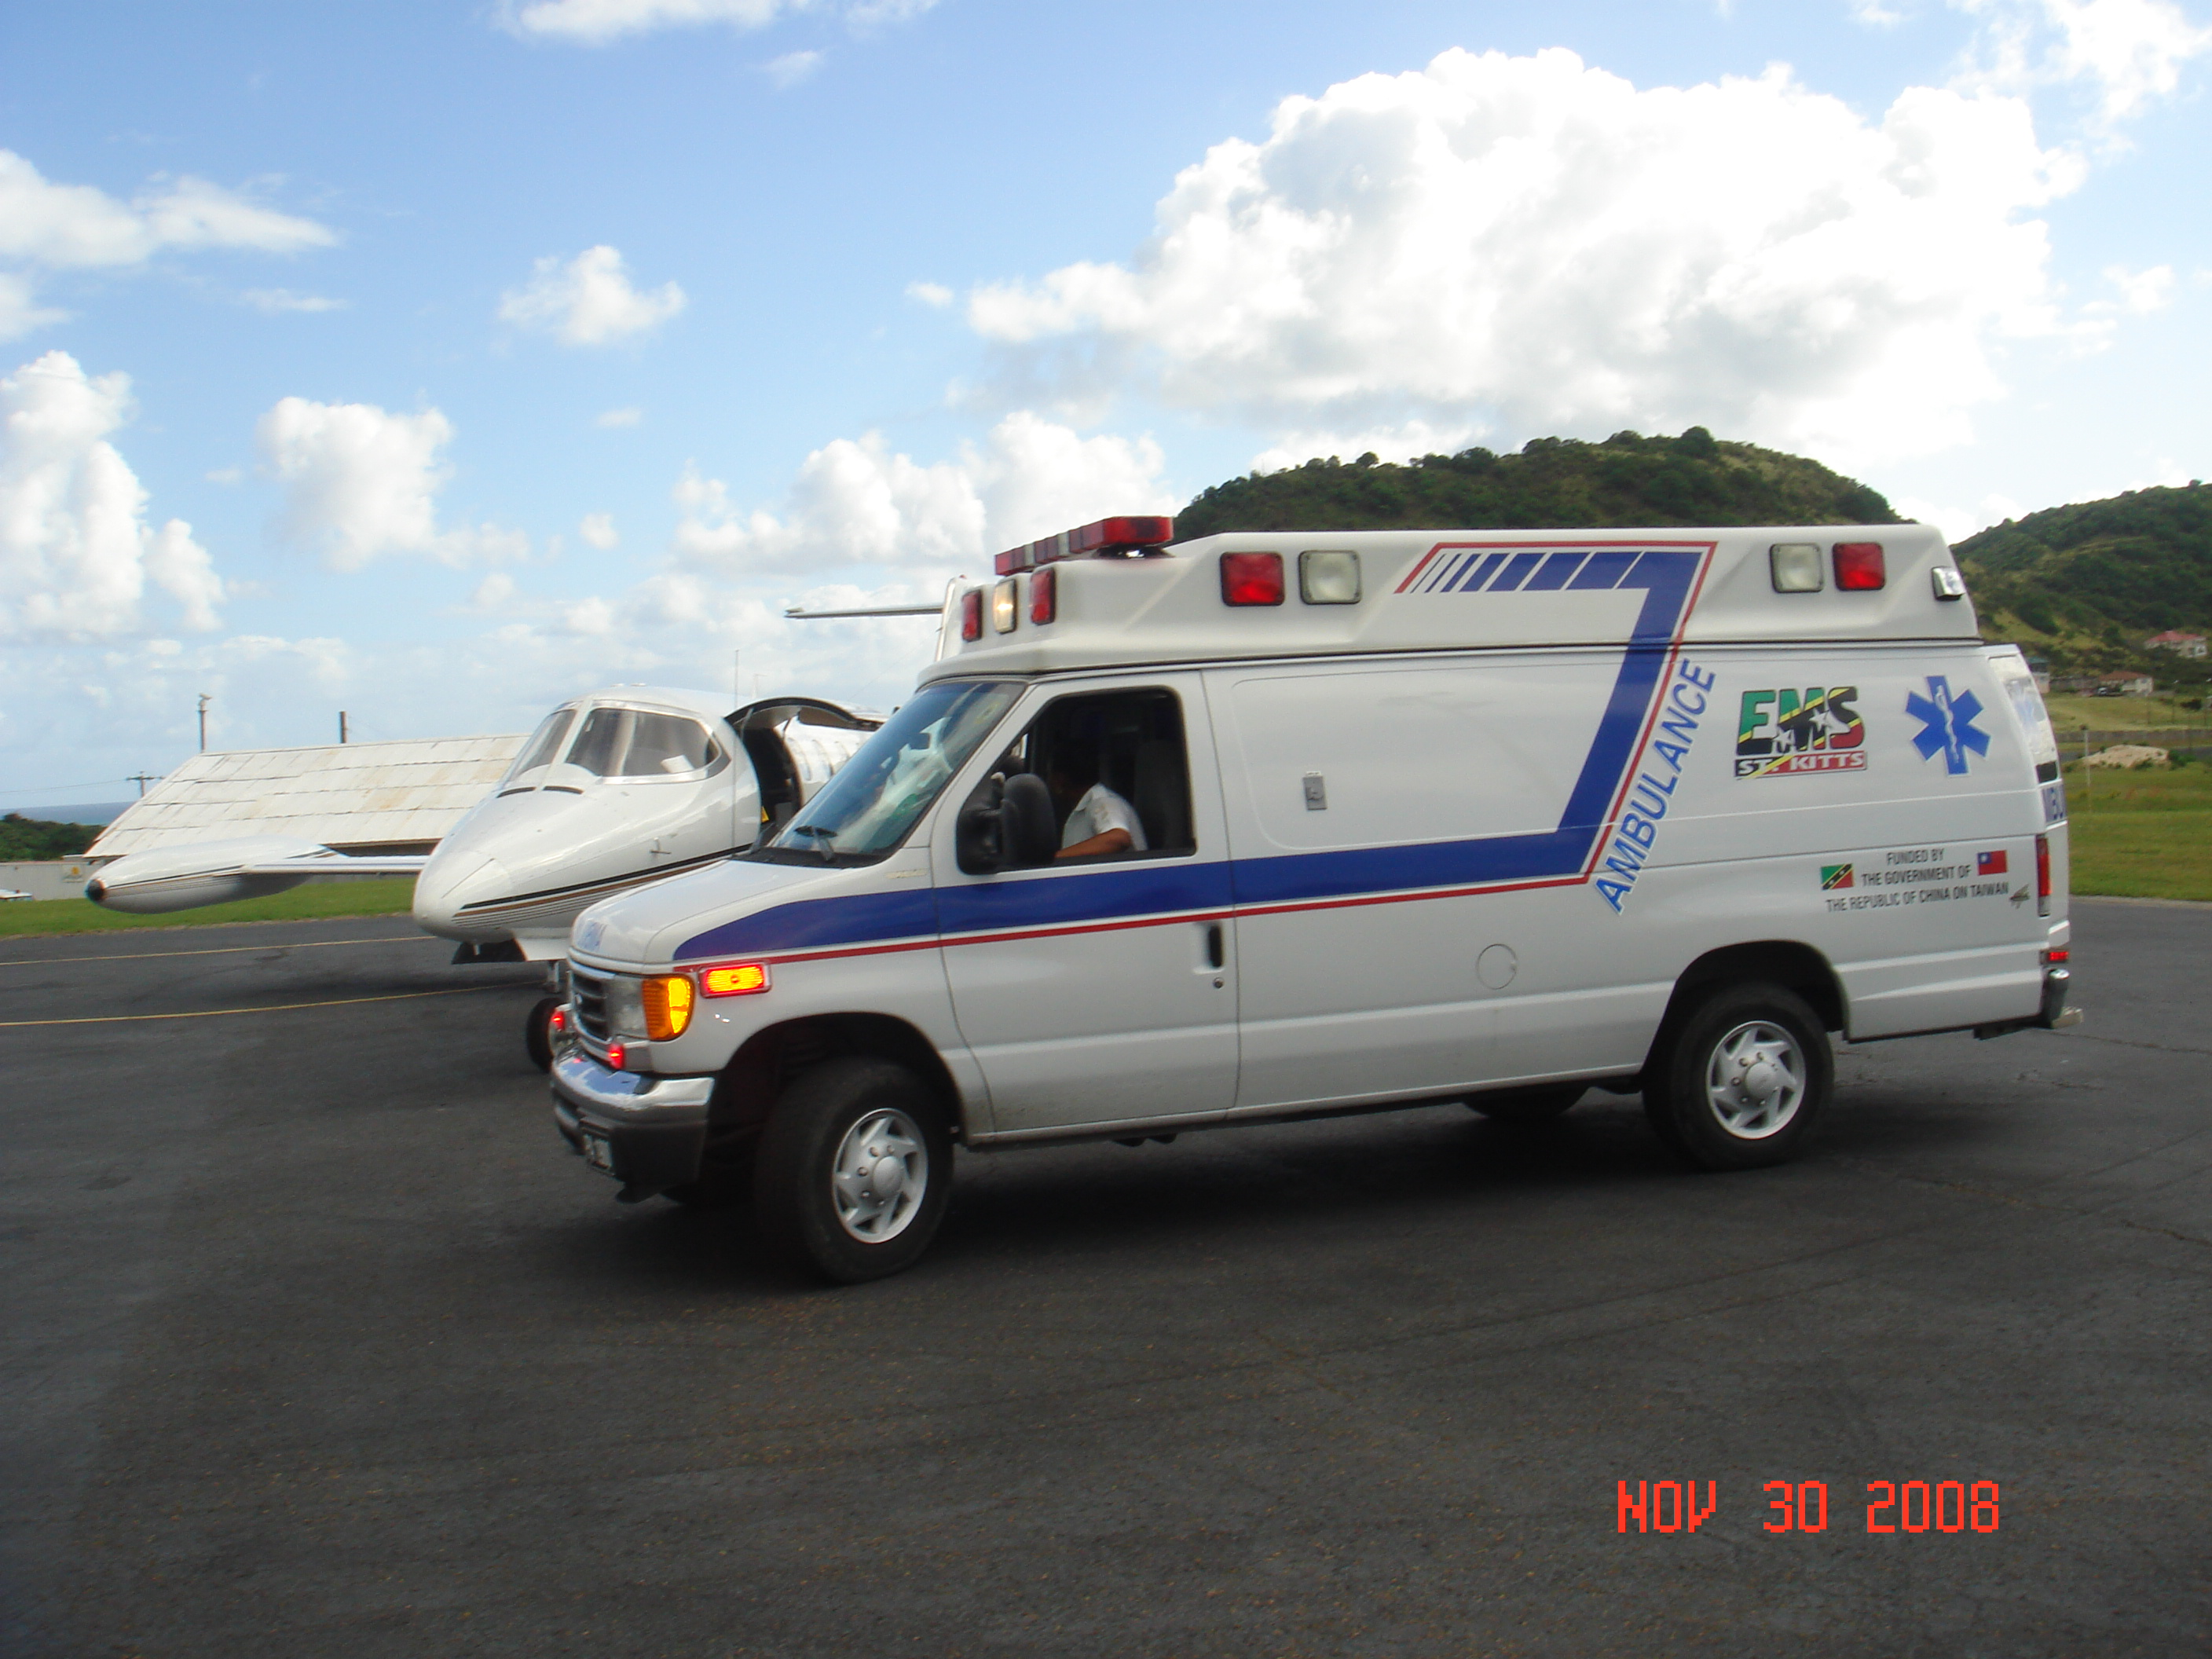 Trinity Medical Crew Receives Patient from Ground Ambulance